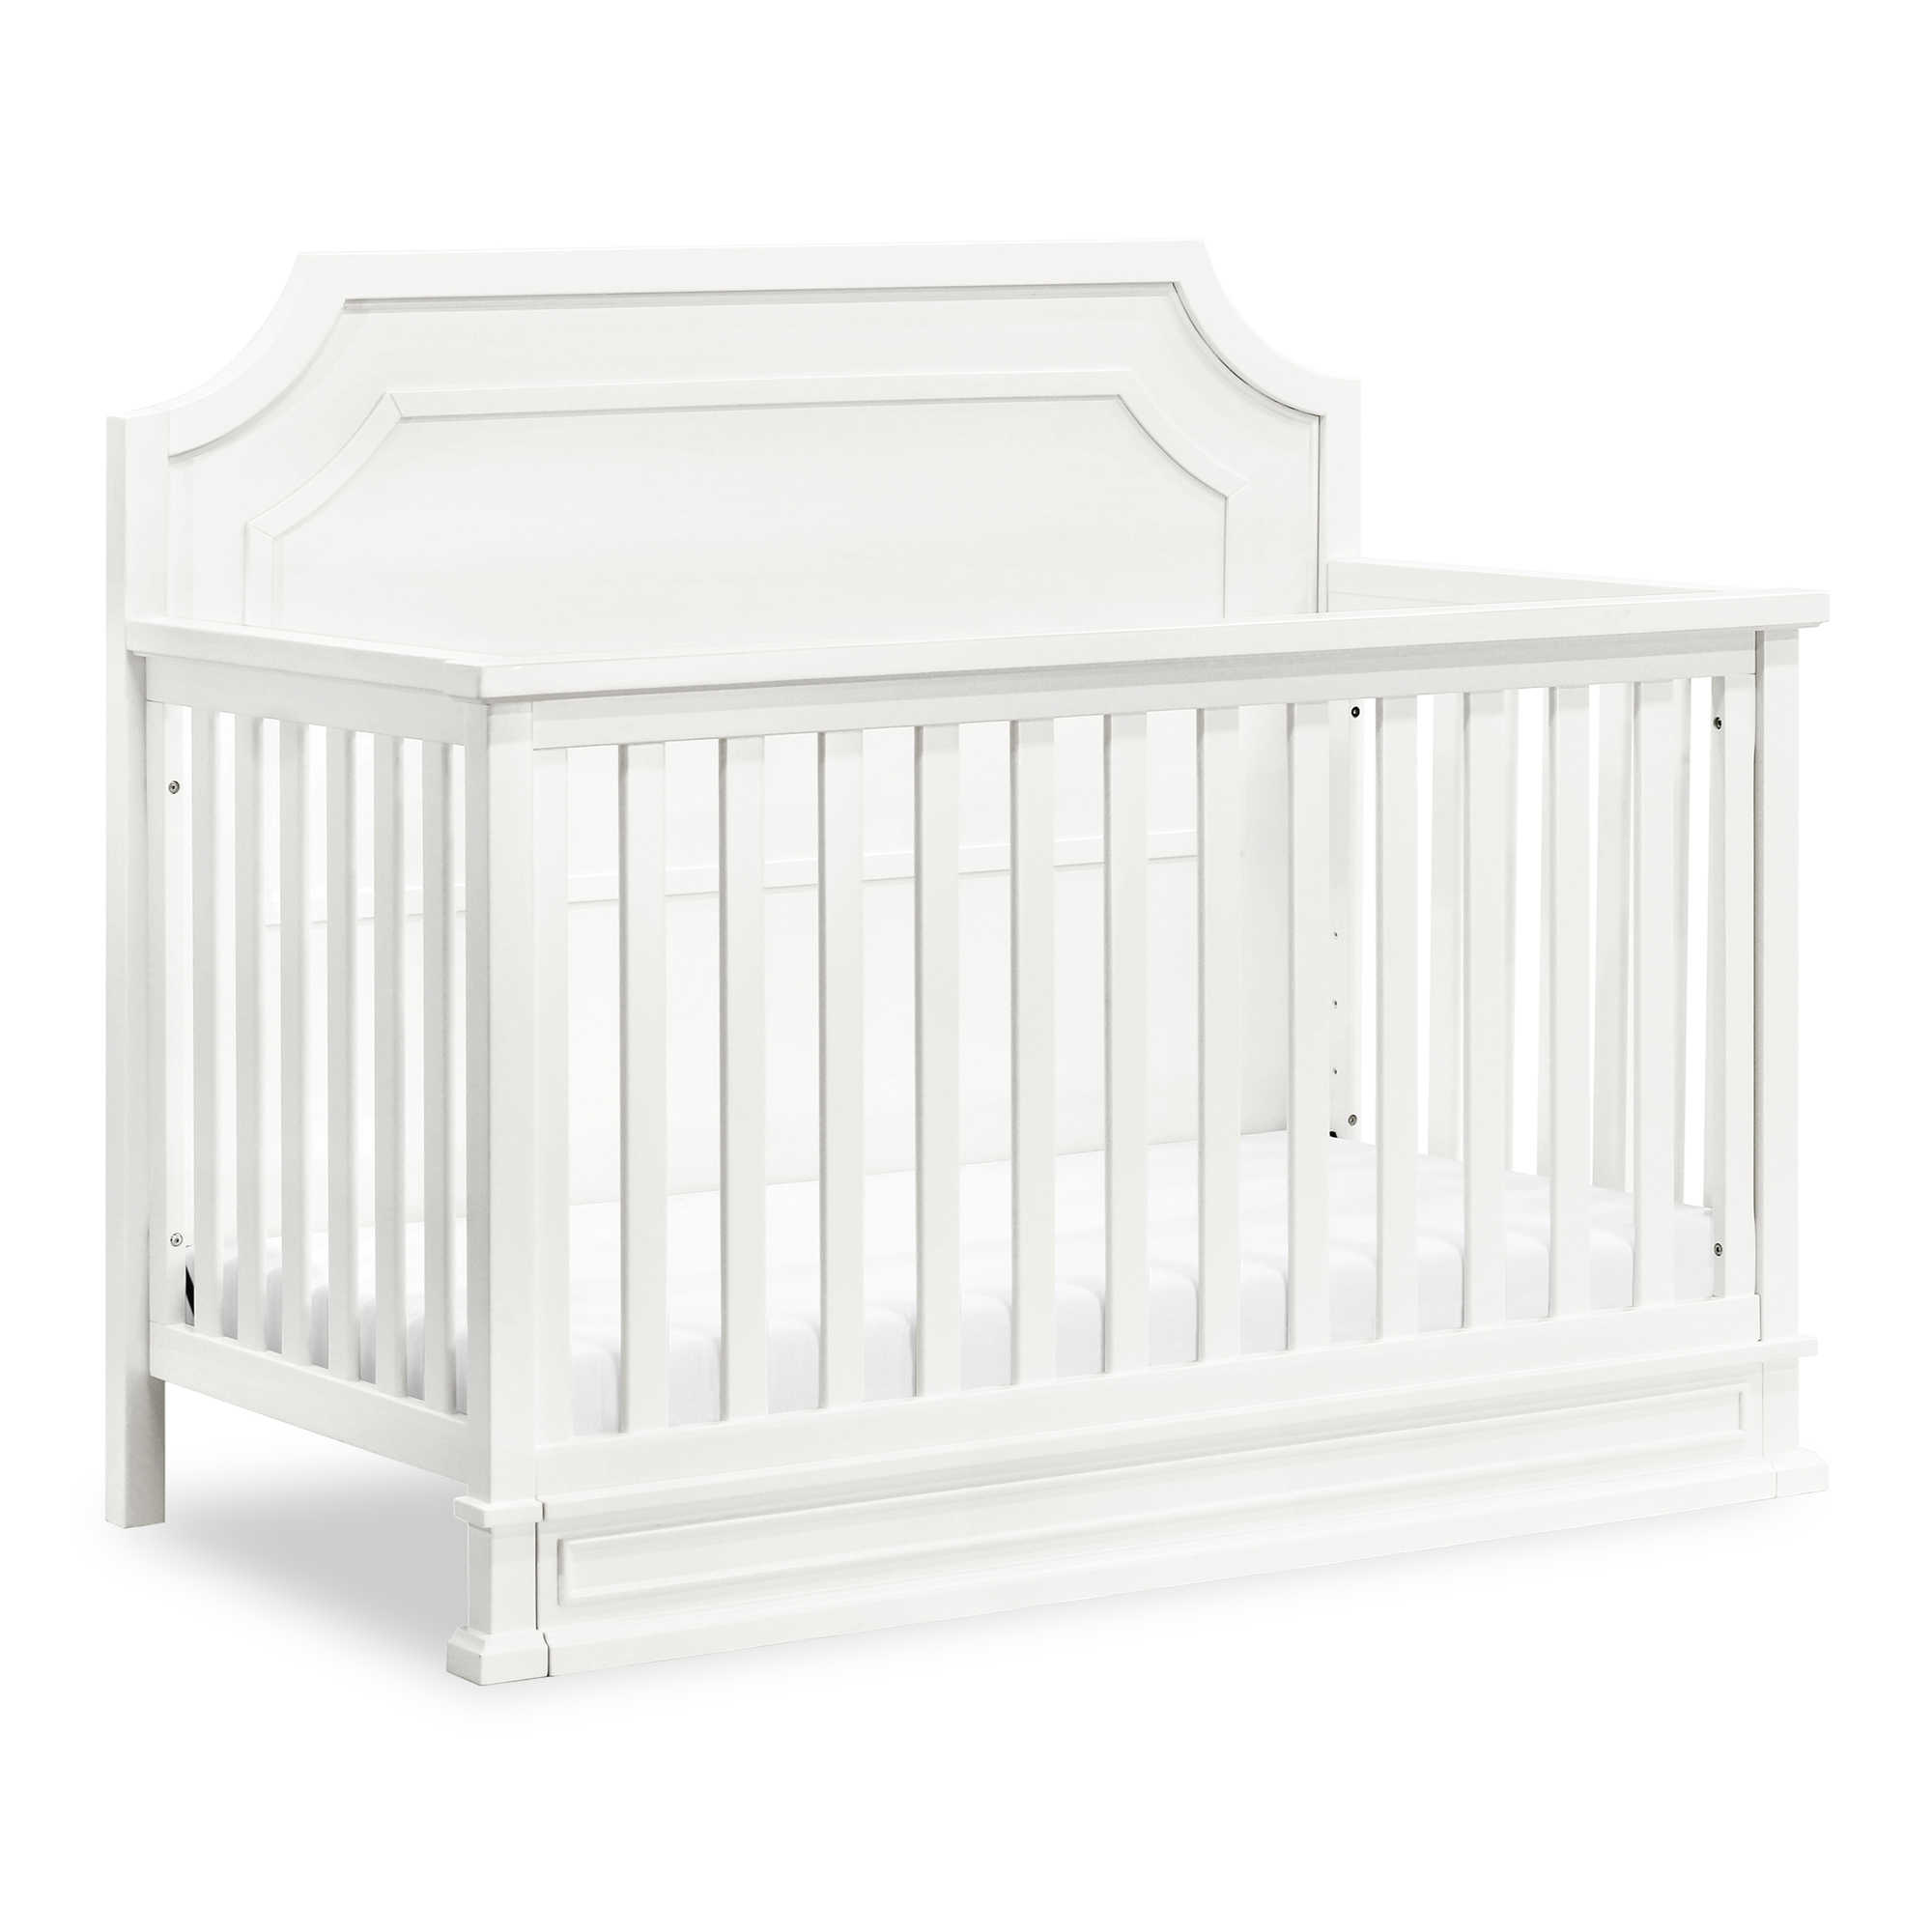 Encore by Million Dollar Baby Classic Emma Regency 4-in-1 Convertible Crib in Warm White